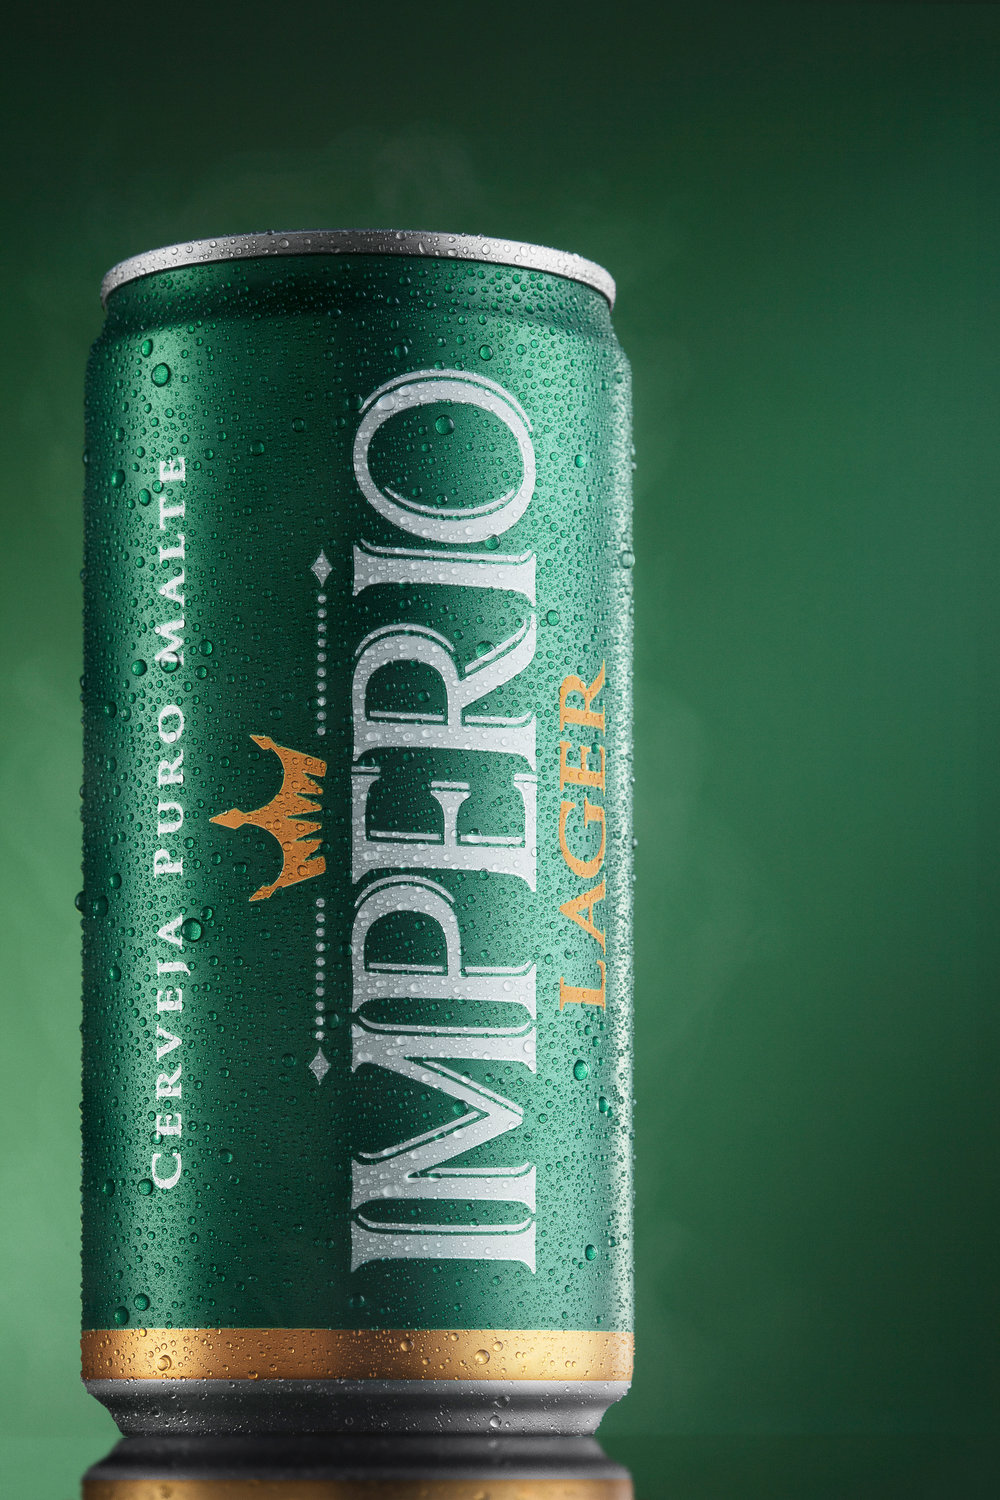 CAN---PURO-MALTE-LAGER---SMOKE-2.jpg